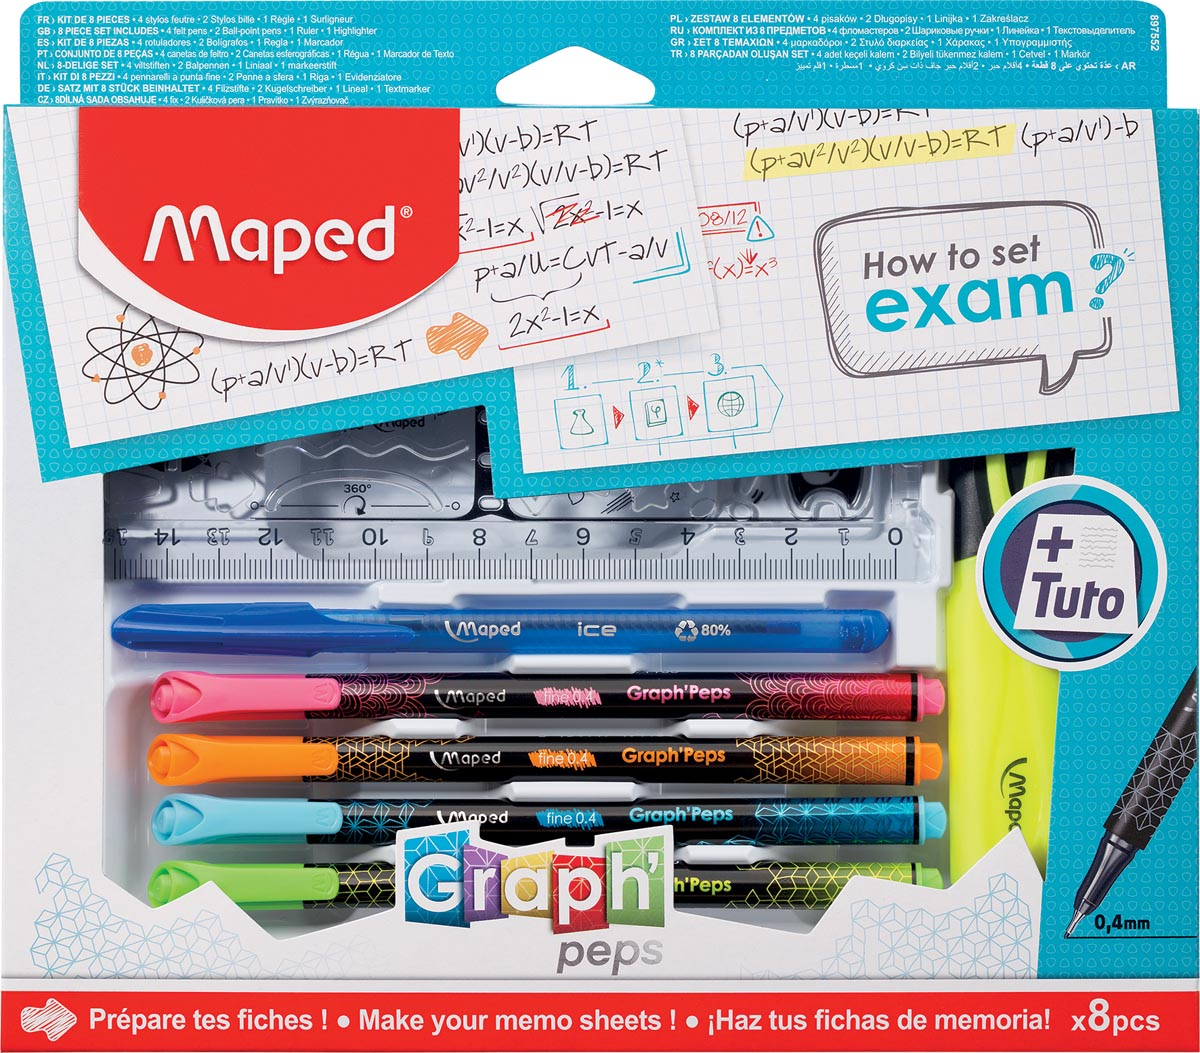 Maped How to exam-set, 8-delige ophangdoos